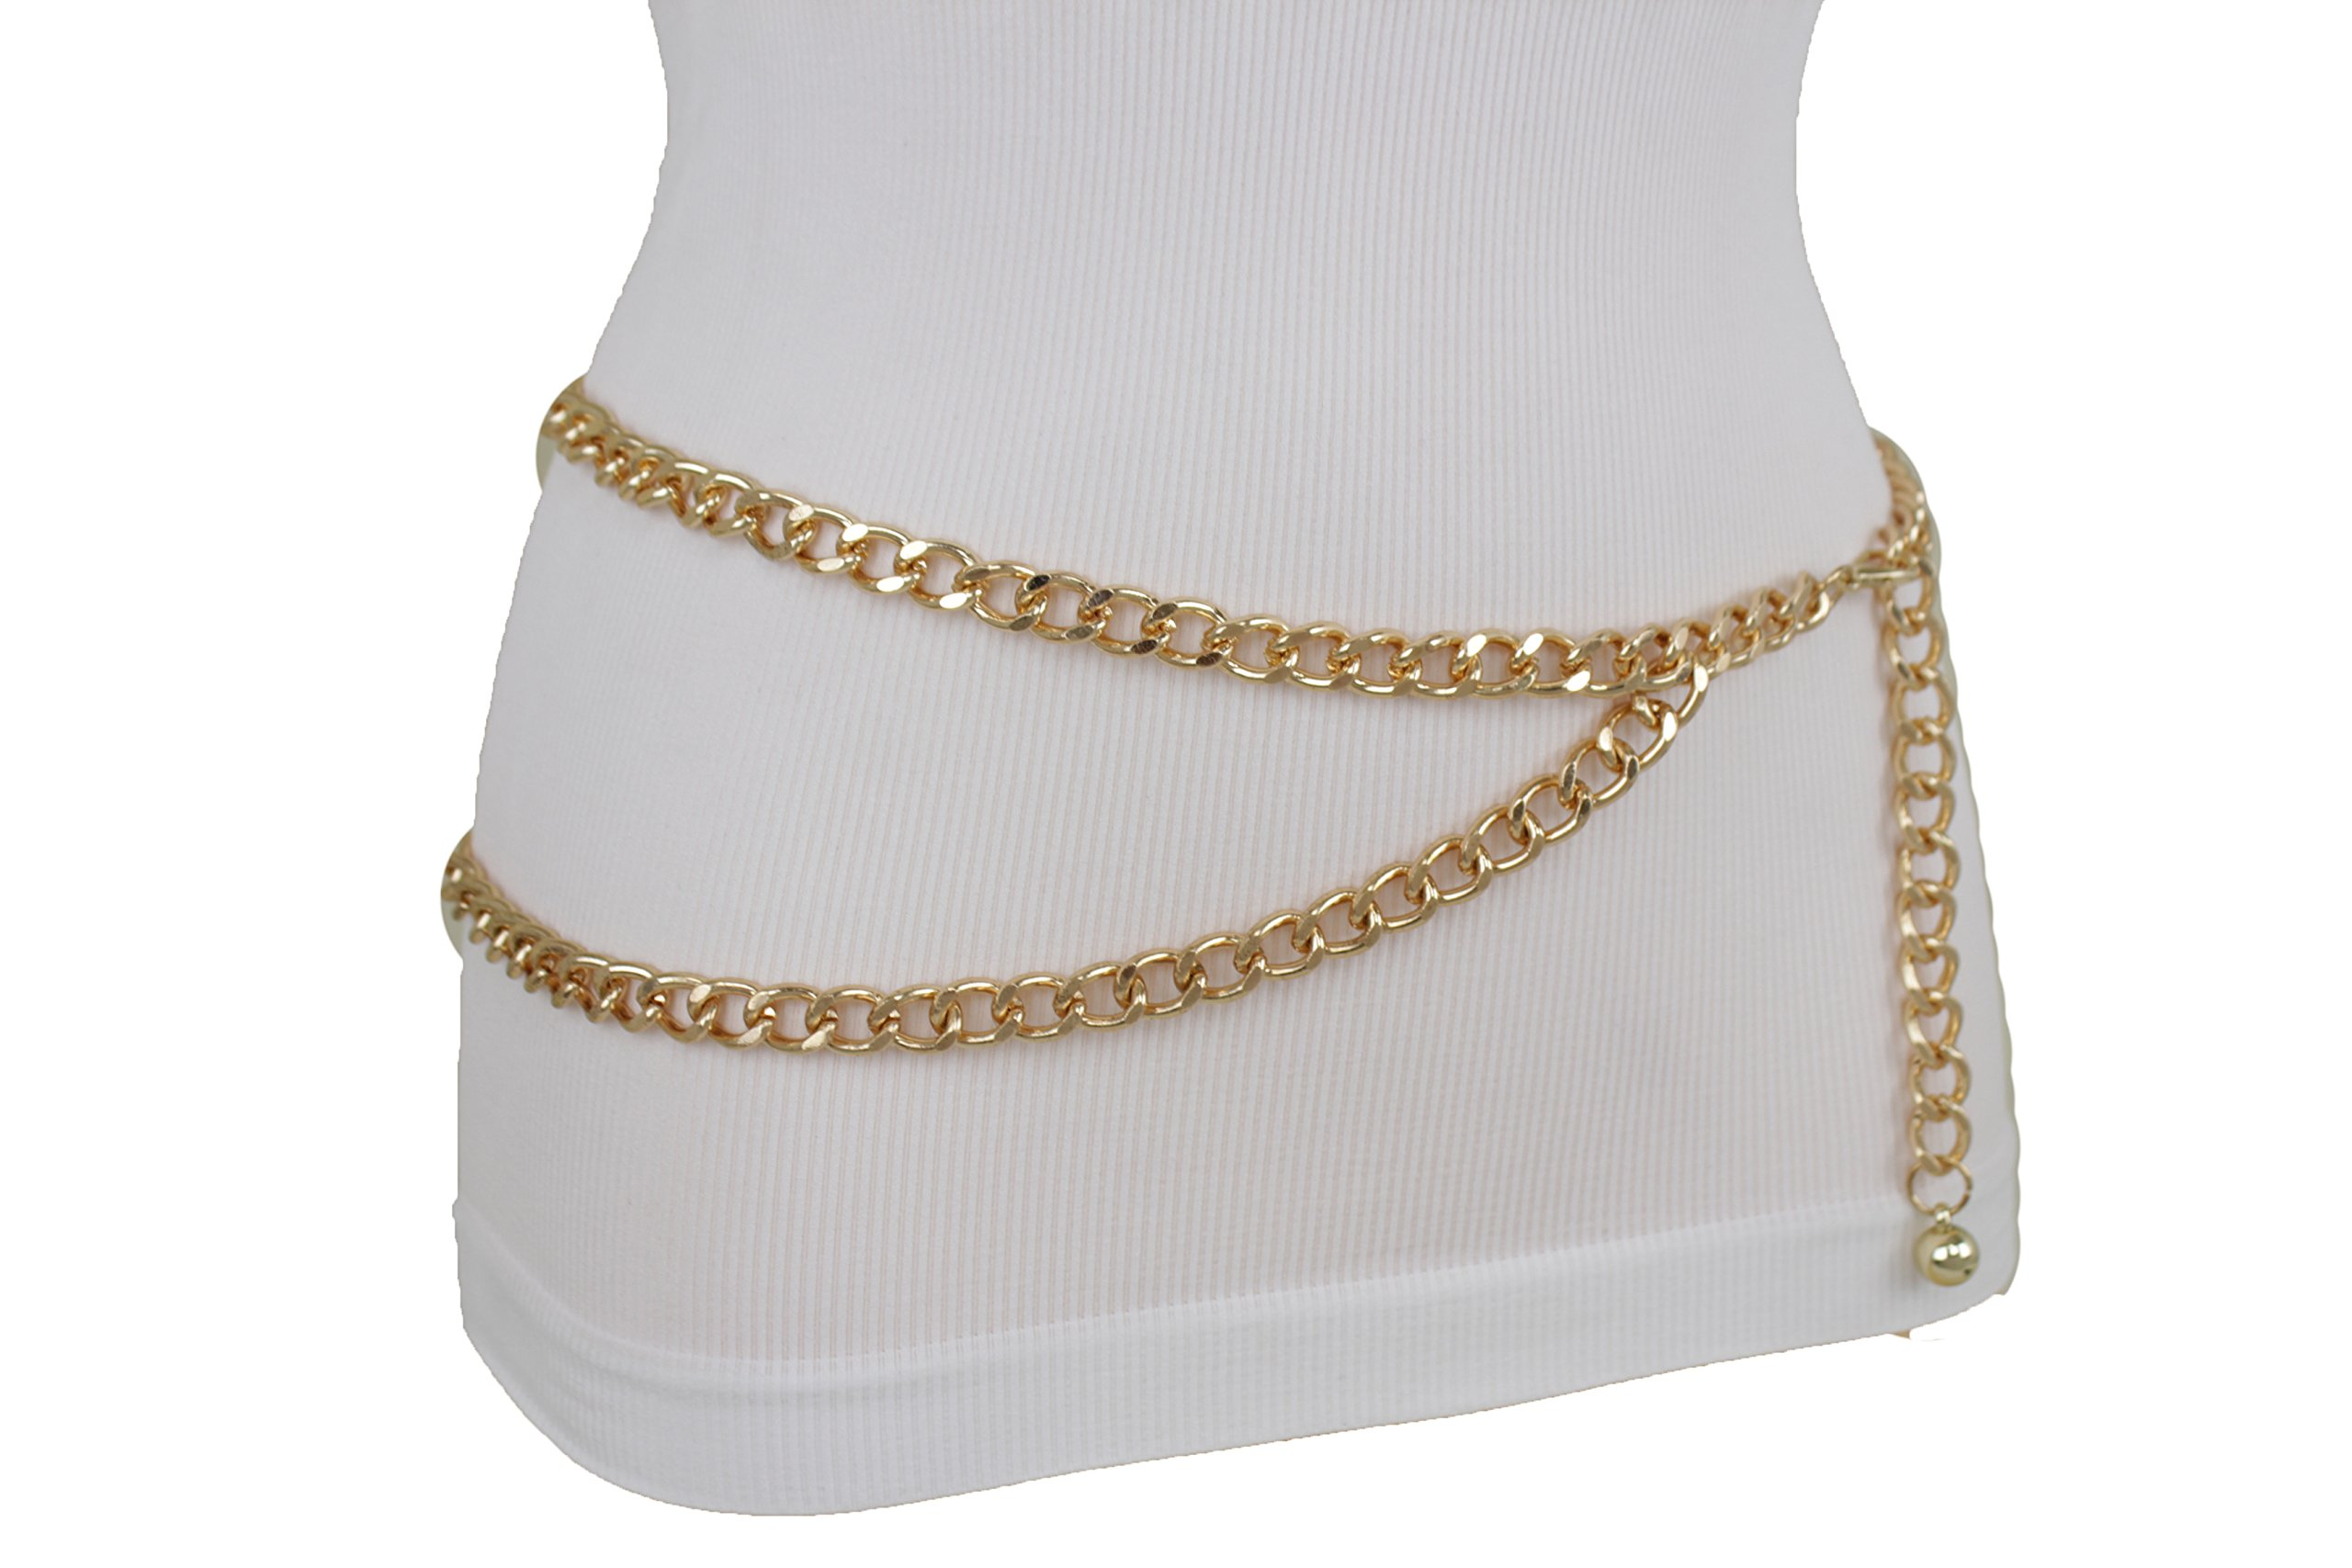 TFJ Women Metal Belt Hip Waist Gold Metal Chain Links Strands Plus M L XL